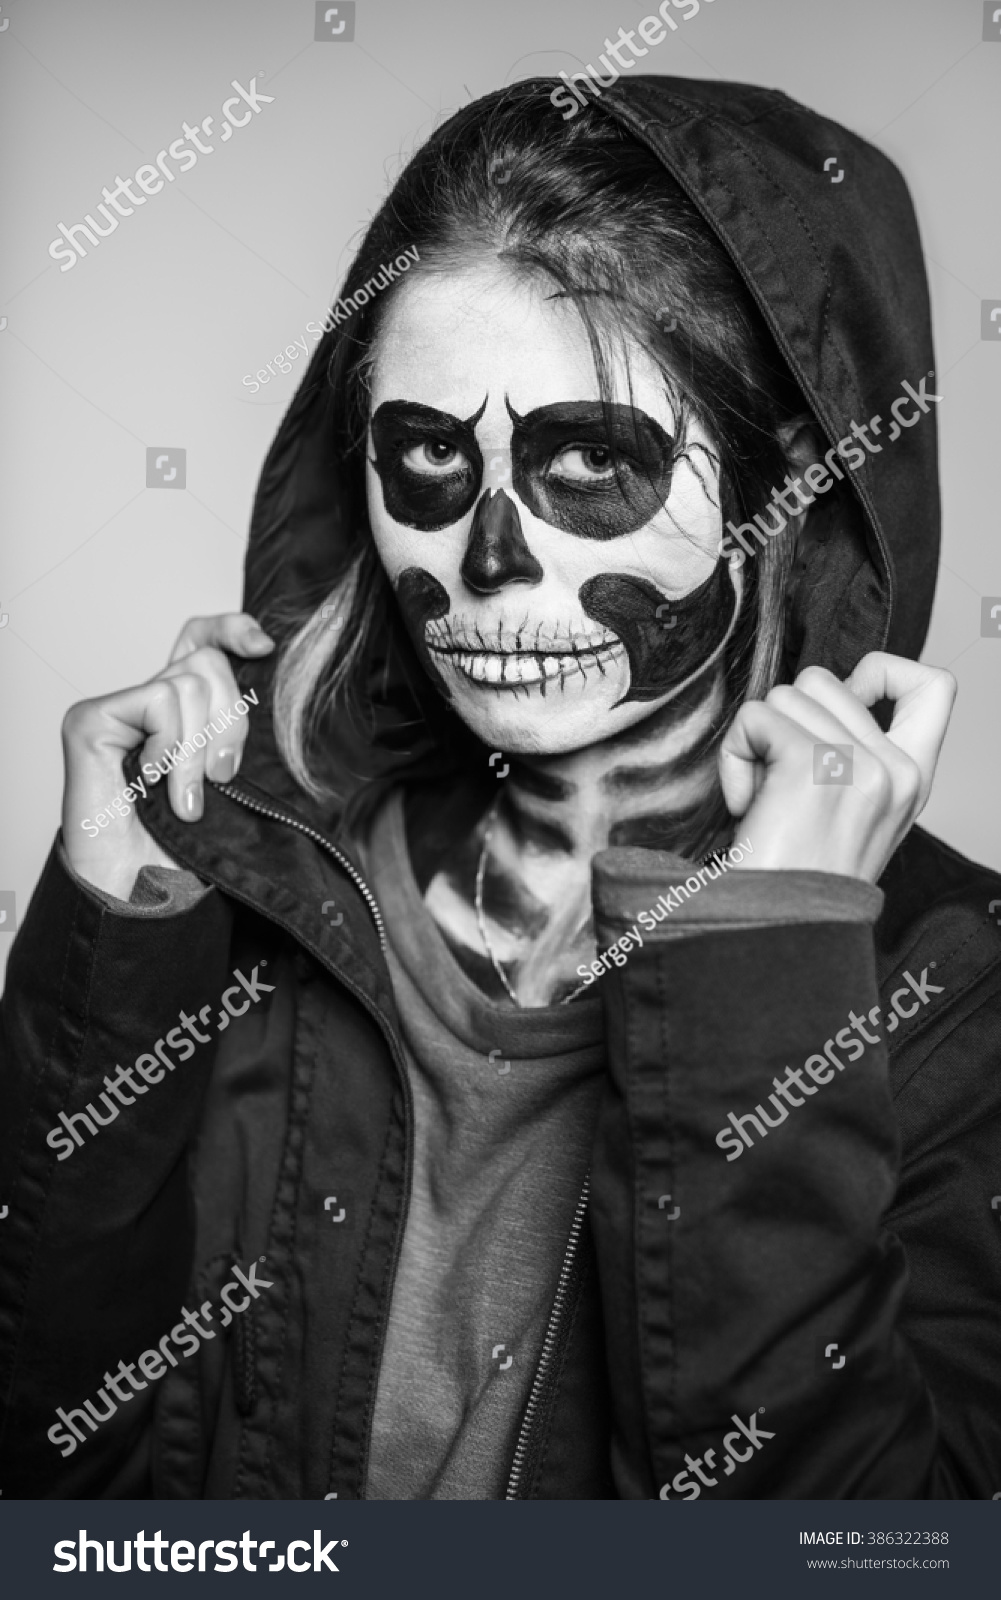 portrait young woman scary makeup halloween stock photo (edit now